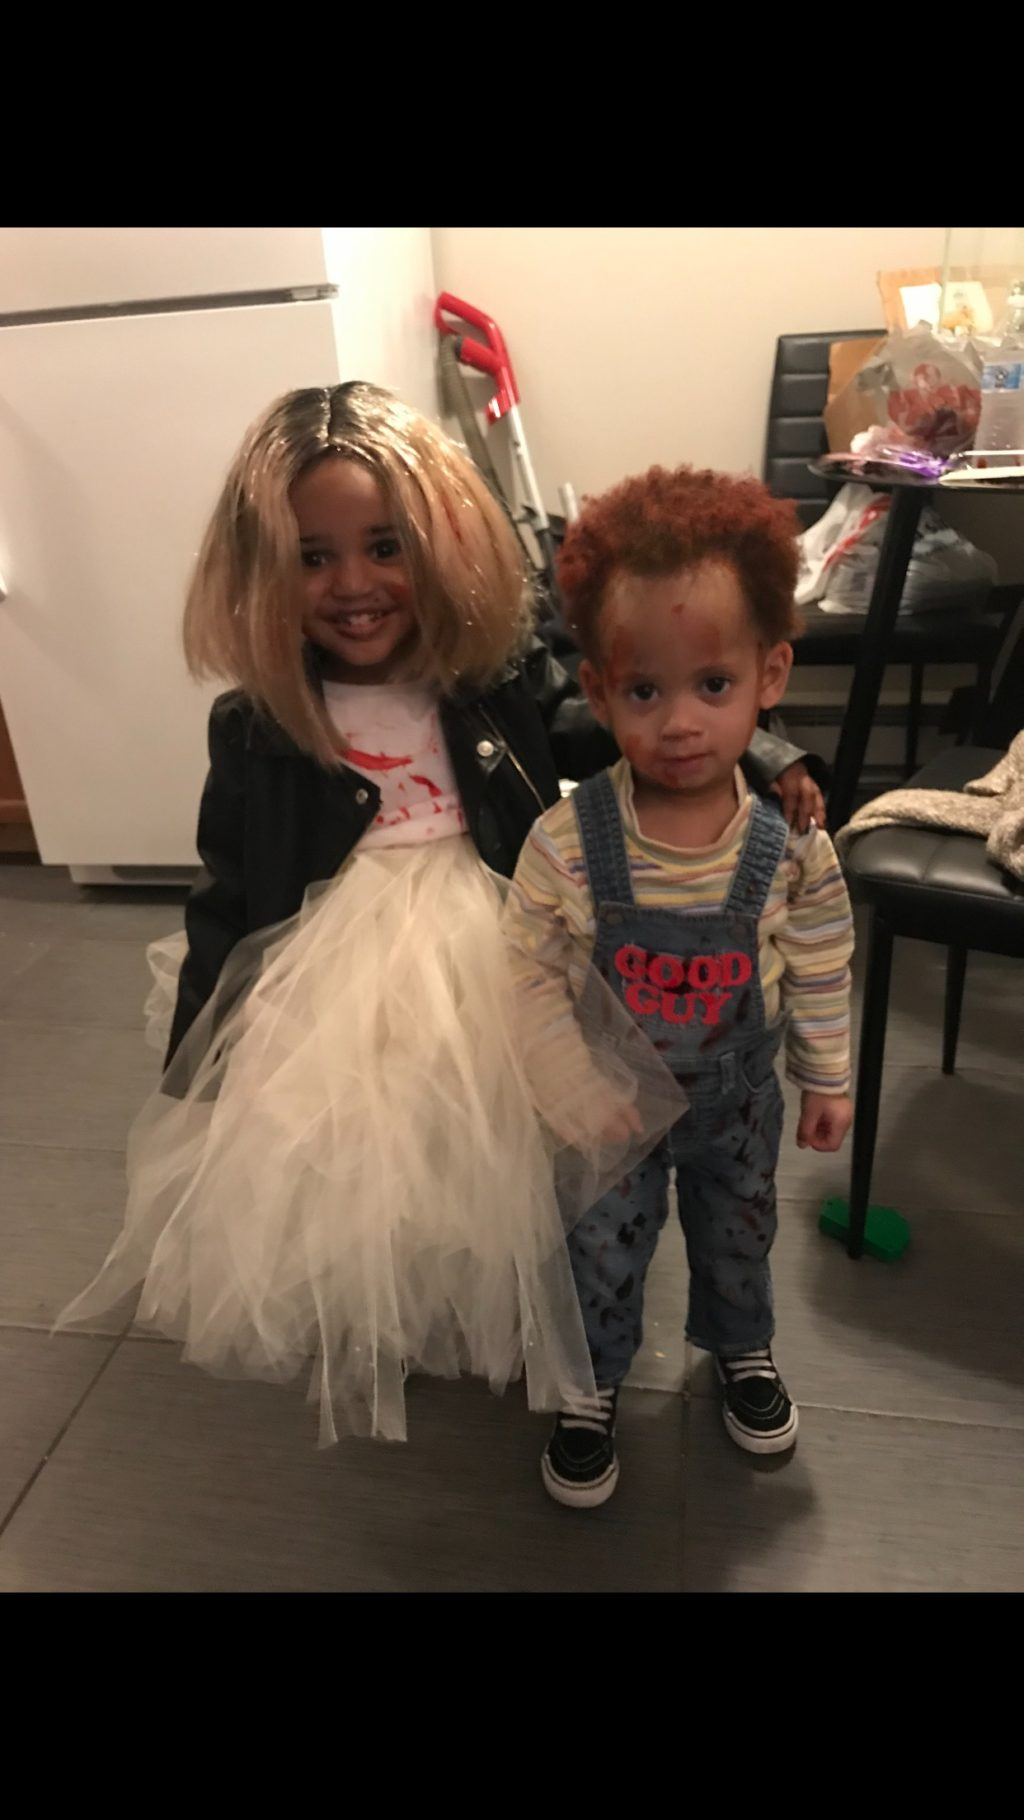 Bride of Chucky and Chucky